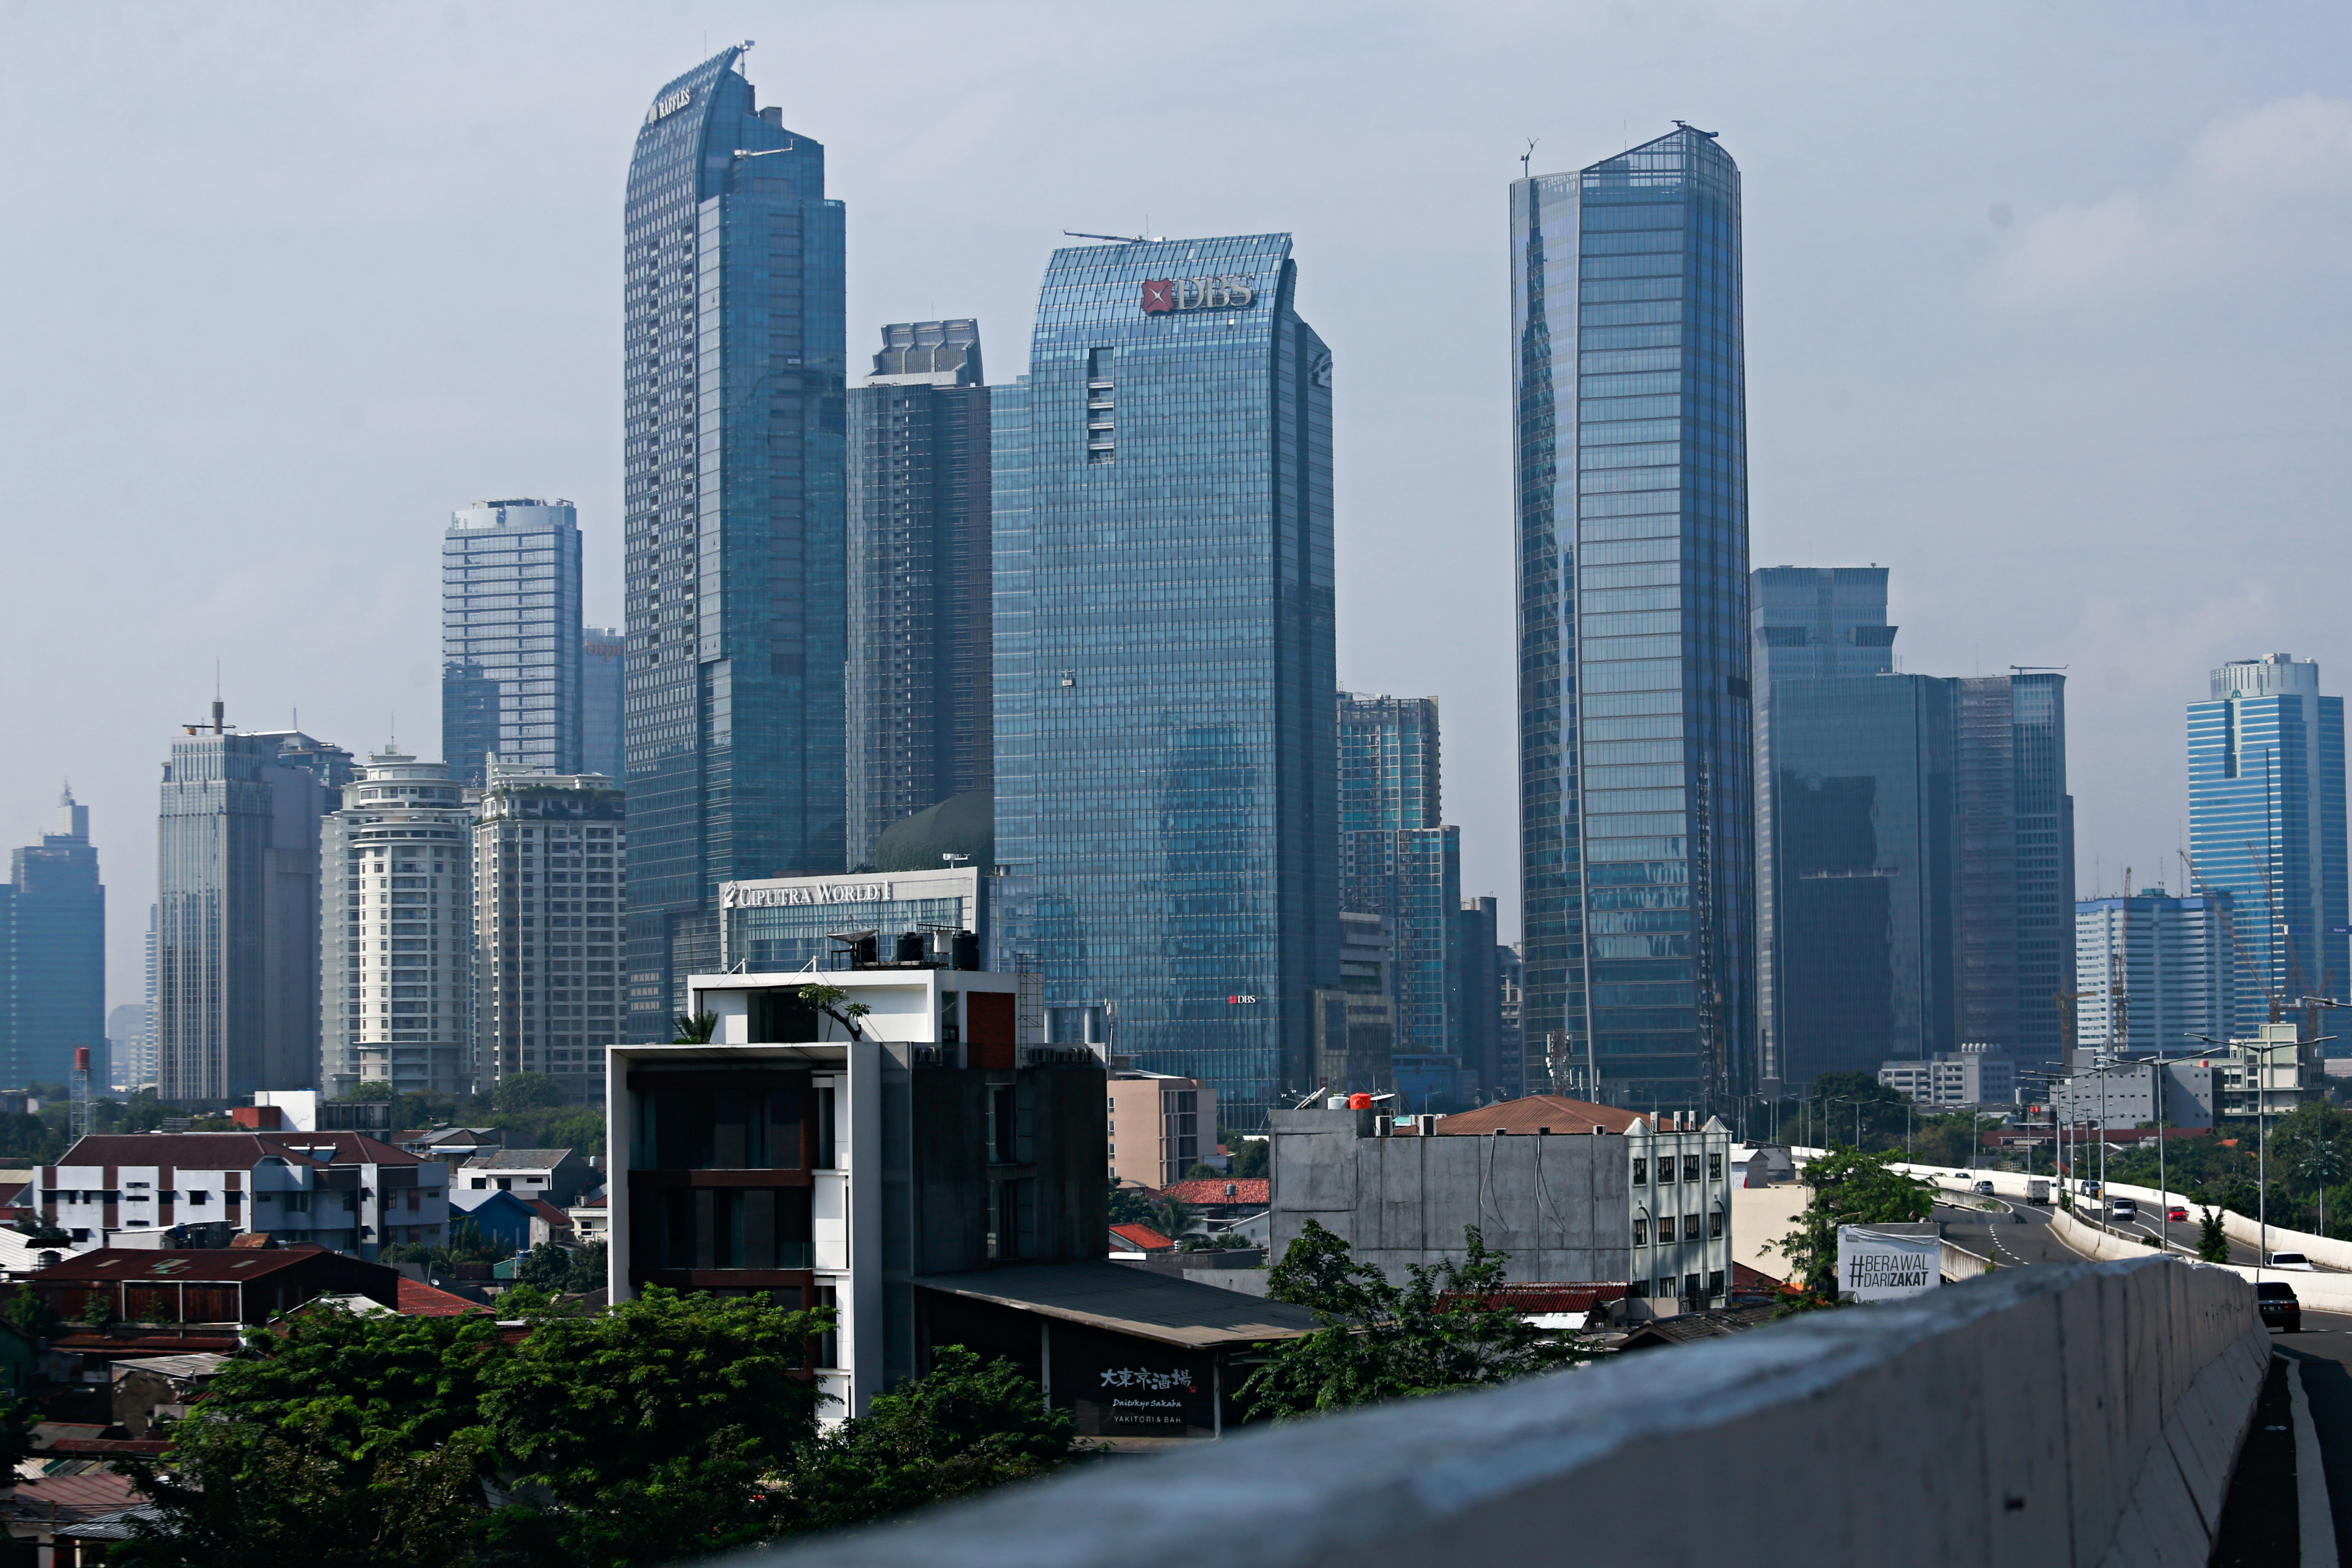 A general view of the skyline of Jakarta, the capital city of Indonesia, August 5, 2021. REUTERS/Ajeng Dinar Ulfiana